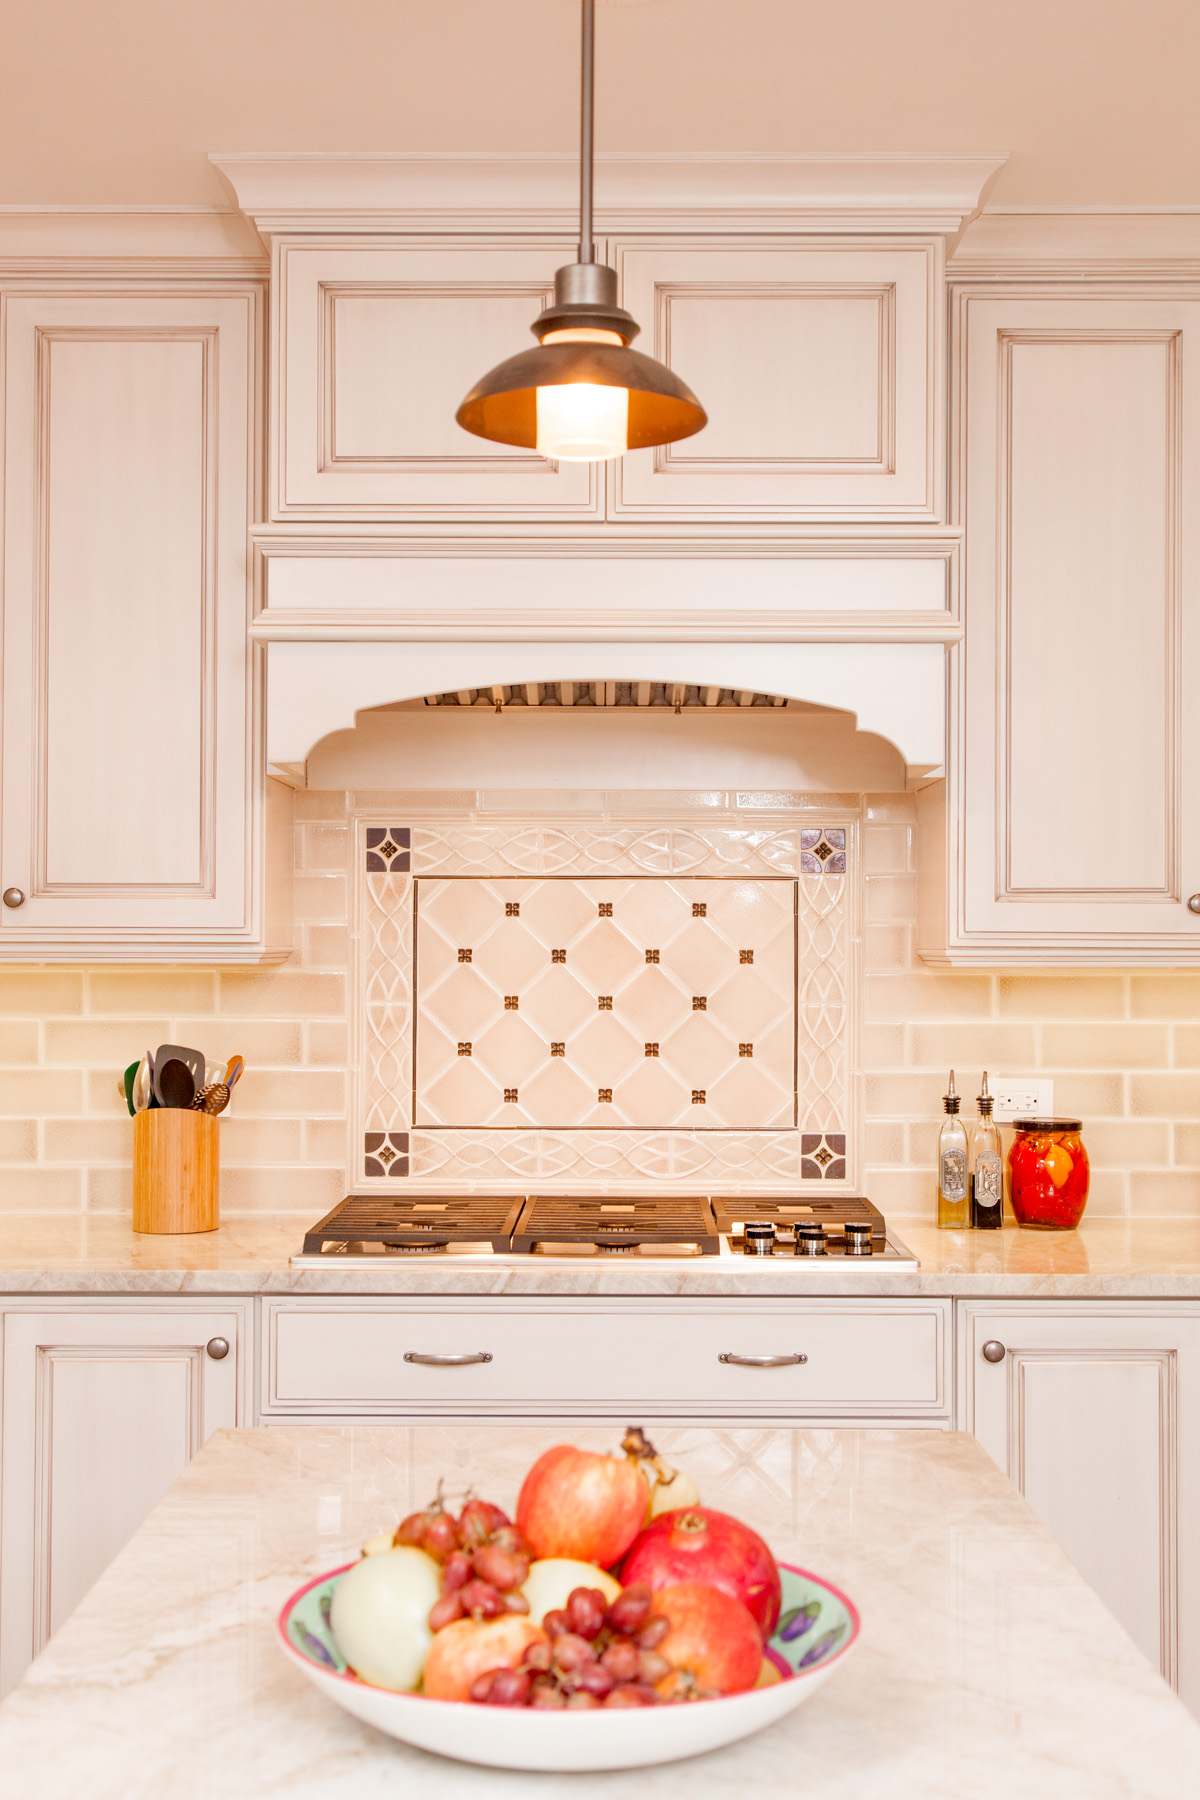 chicago kitchen remodeling kitchen remodeling chicago Chicago Renovation Development Kitchen Remodeling img a